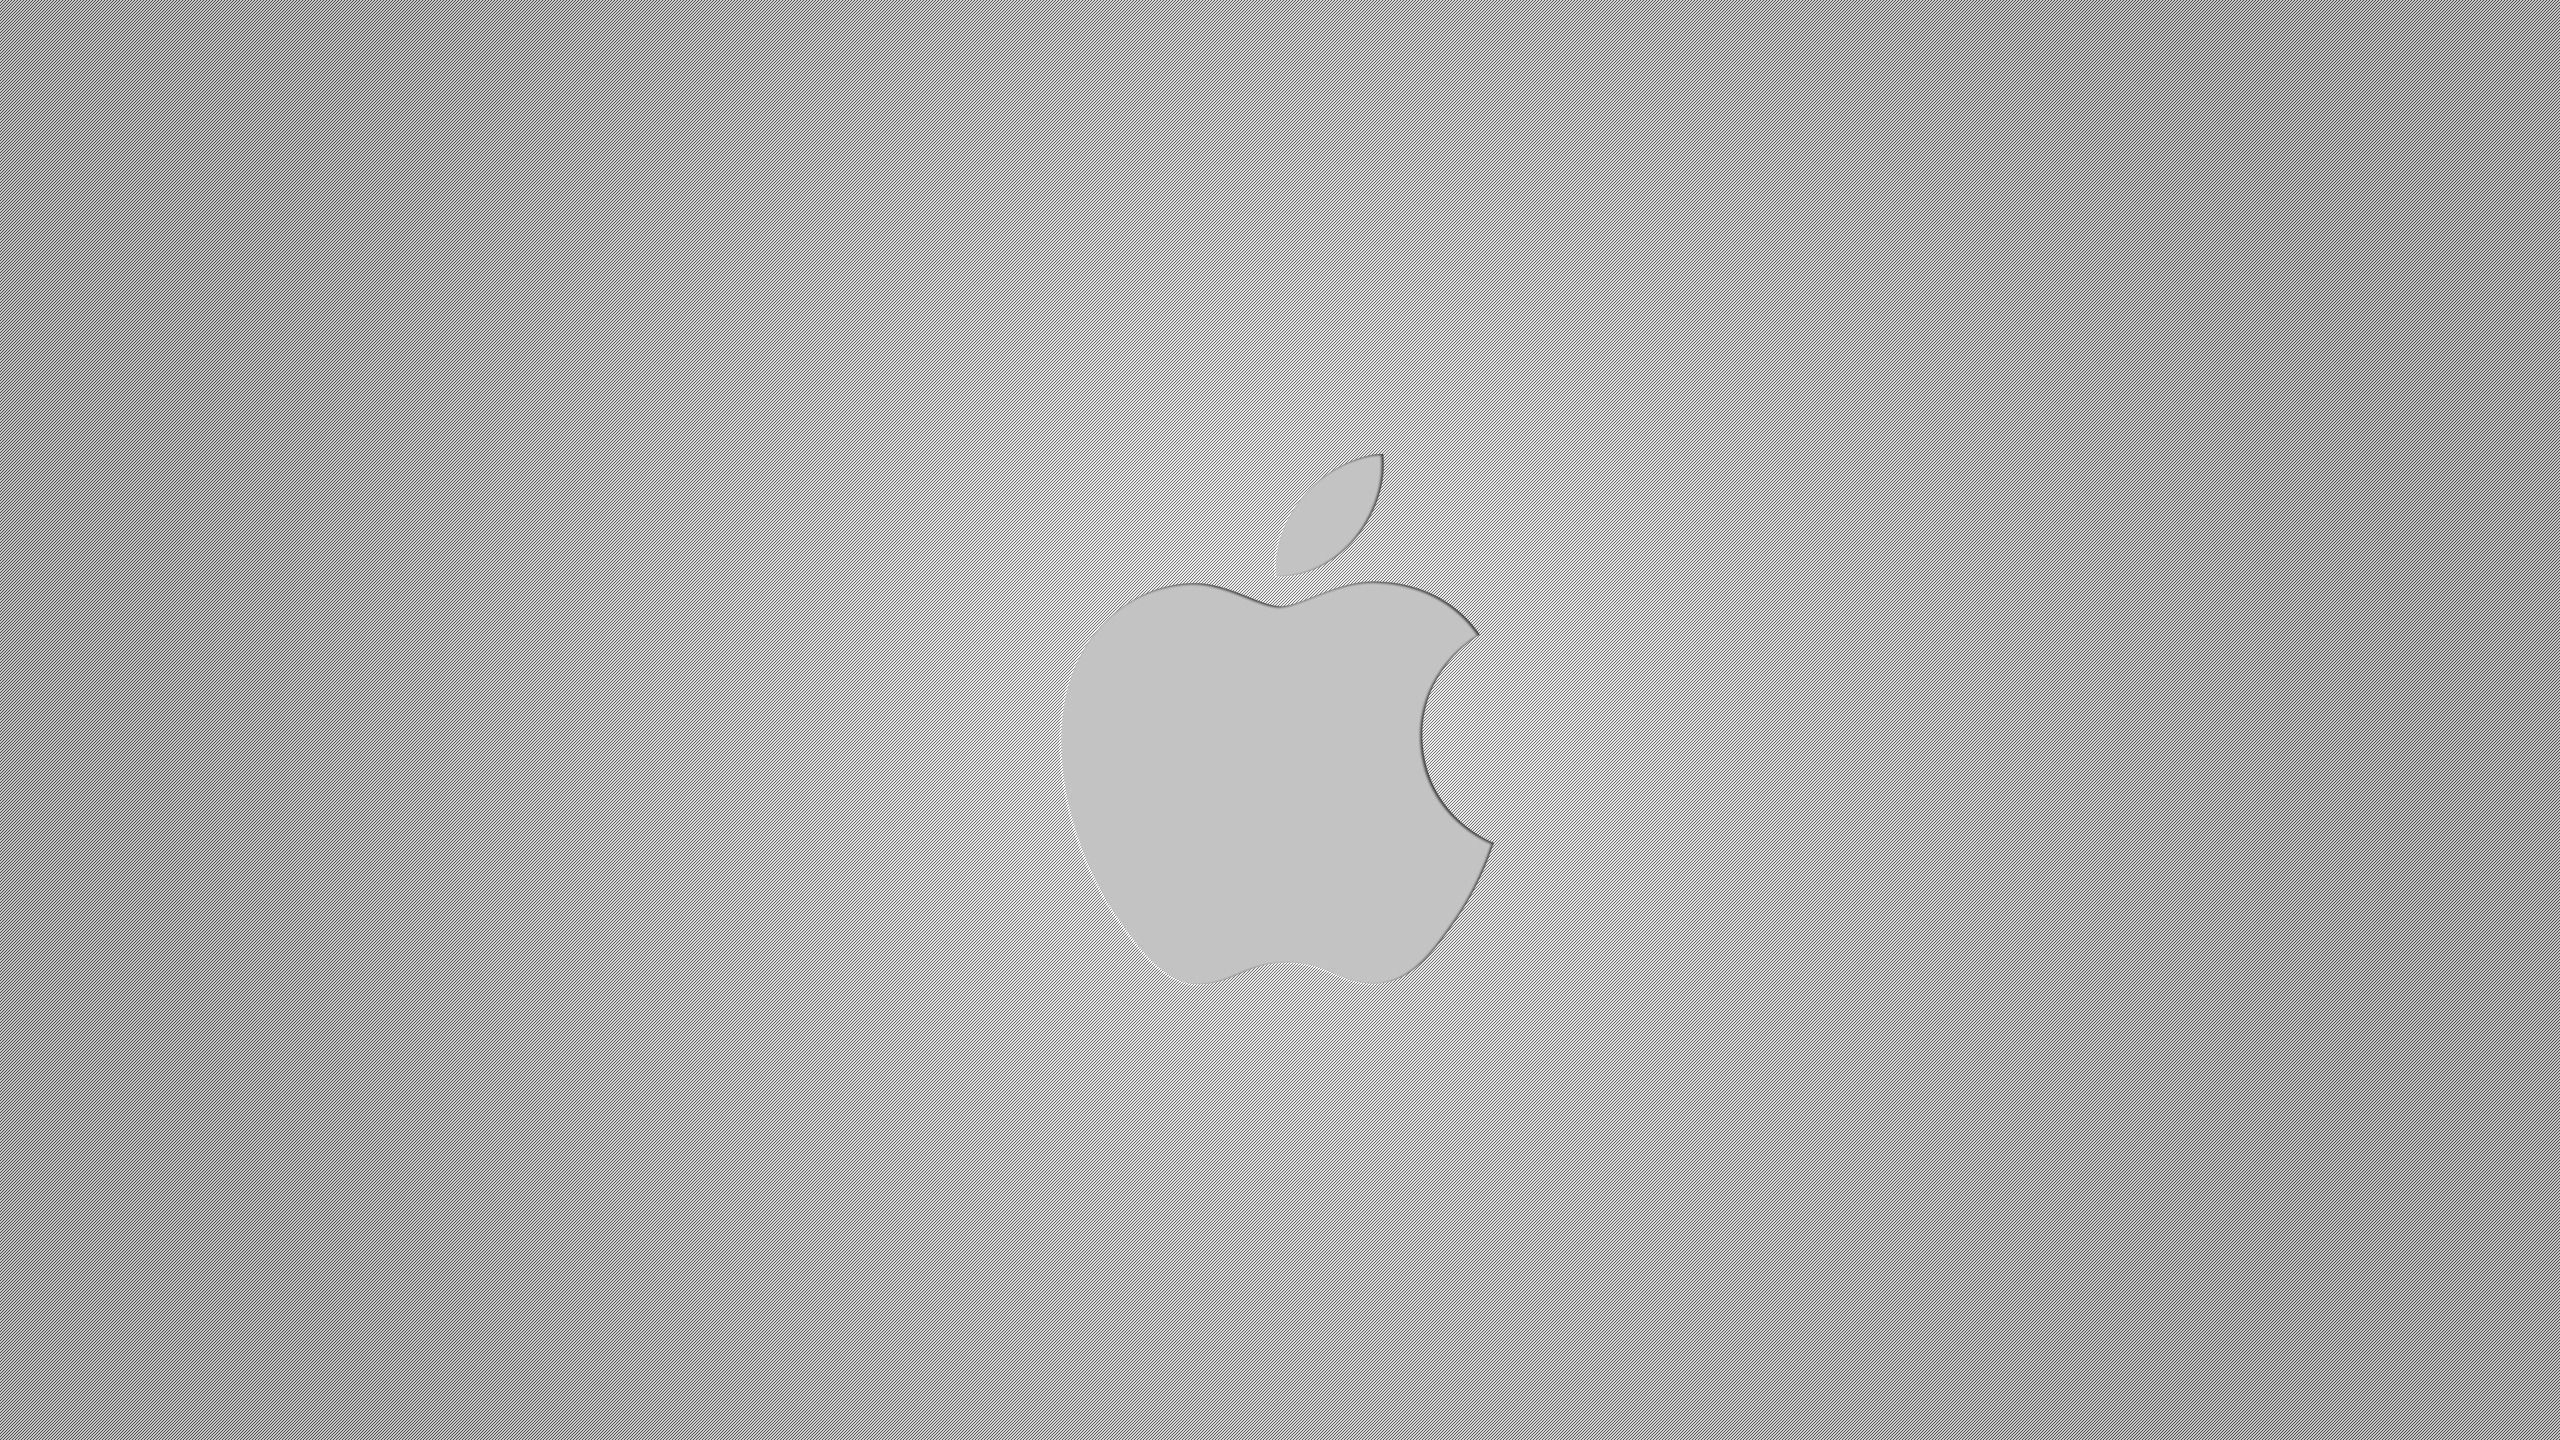 apple, stylish apple - HD wallpaper desktop backgrounds